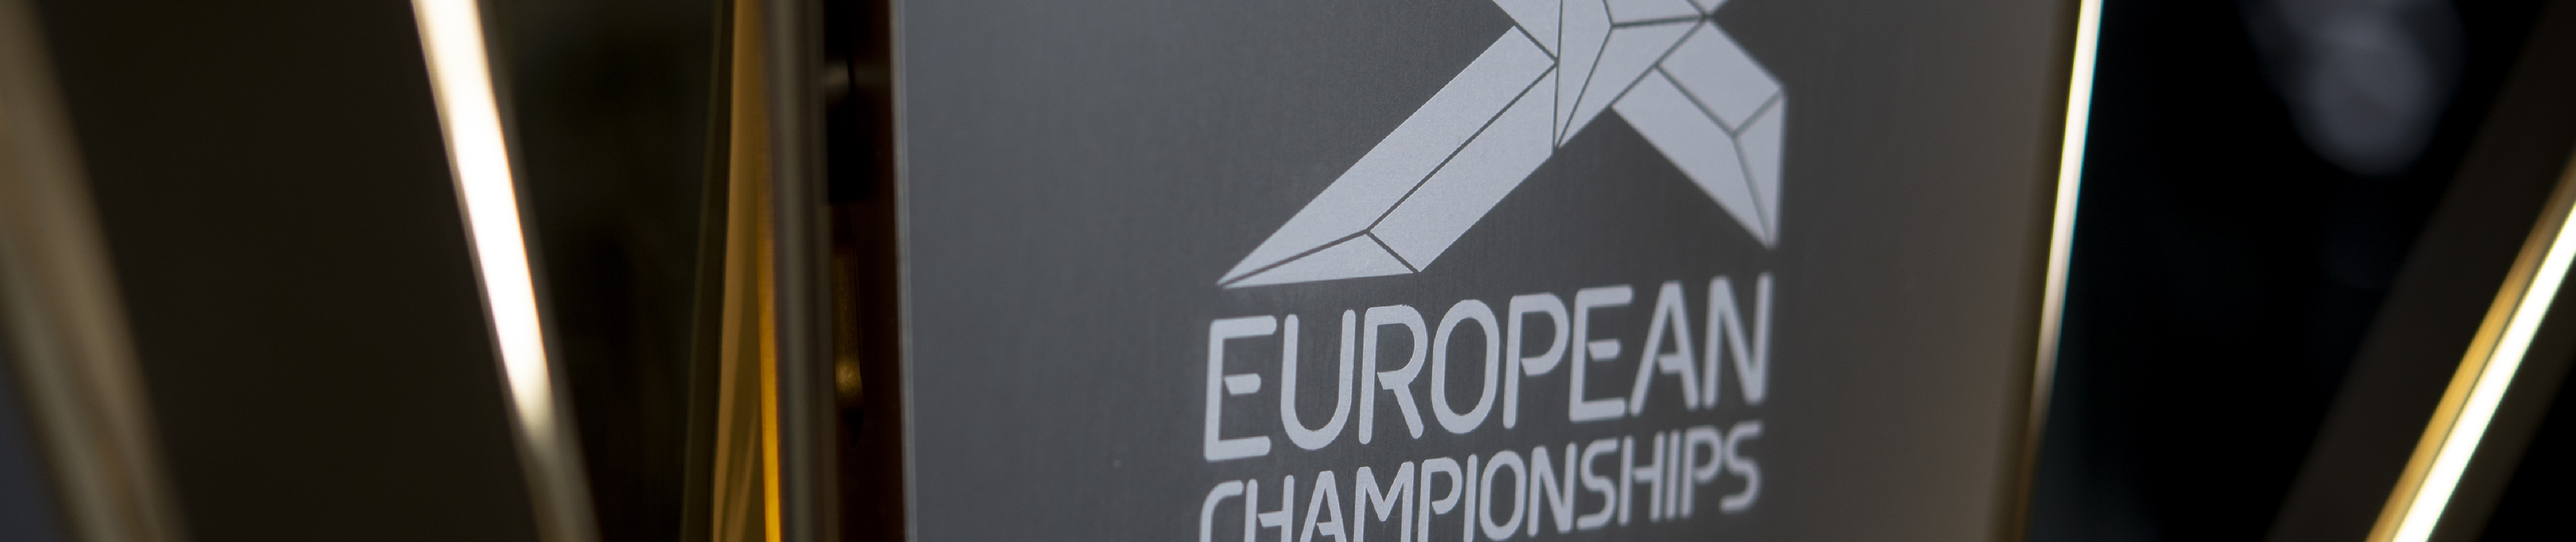 European Championships: Winning Nation Trophy Concepts